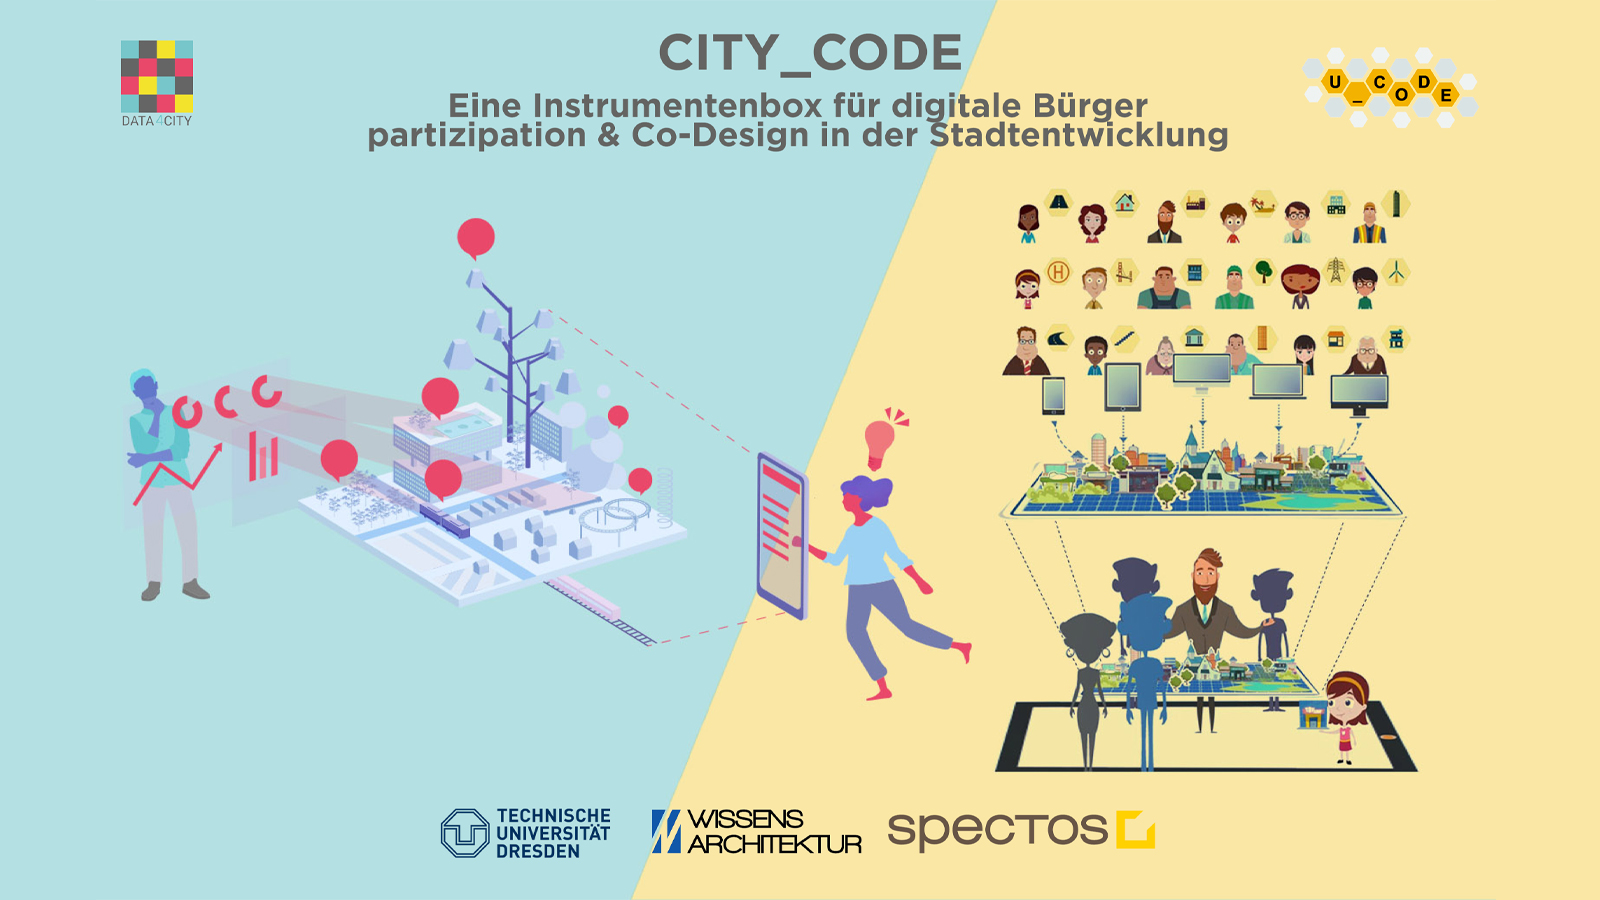 Data4City proposed a solution for digital citizen participation in Vienna